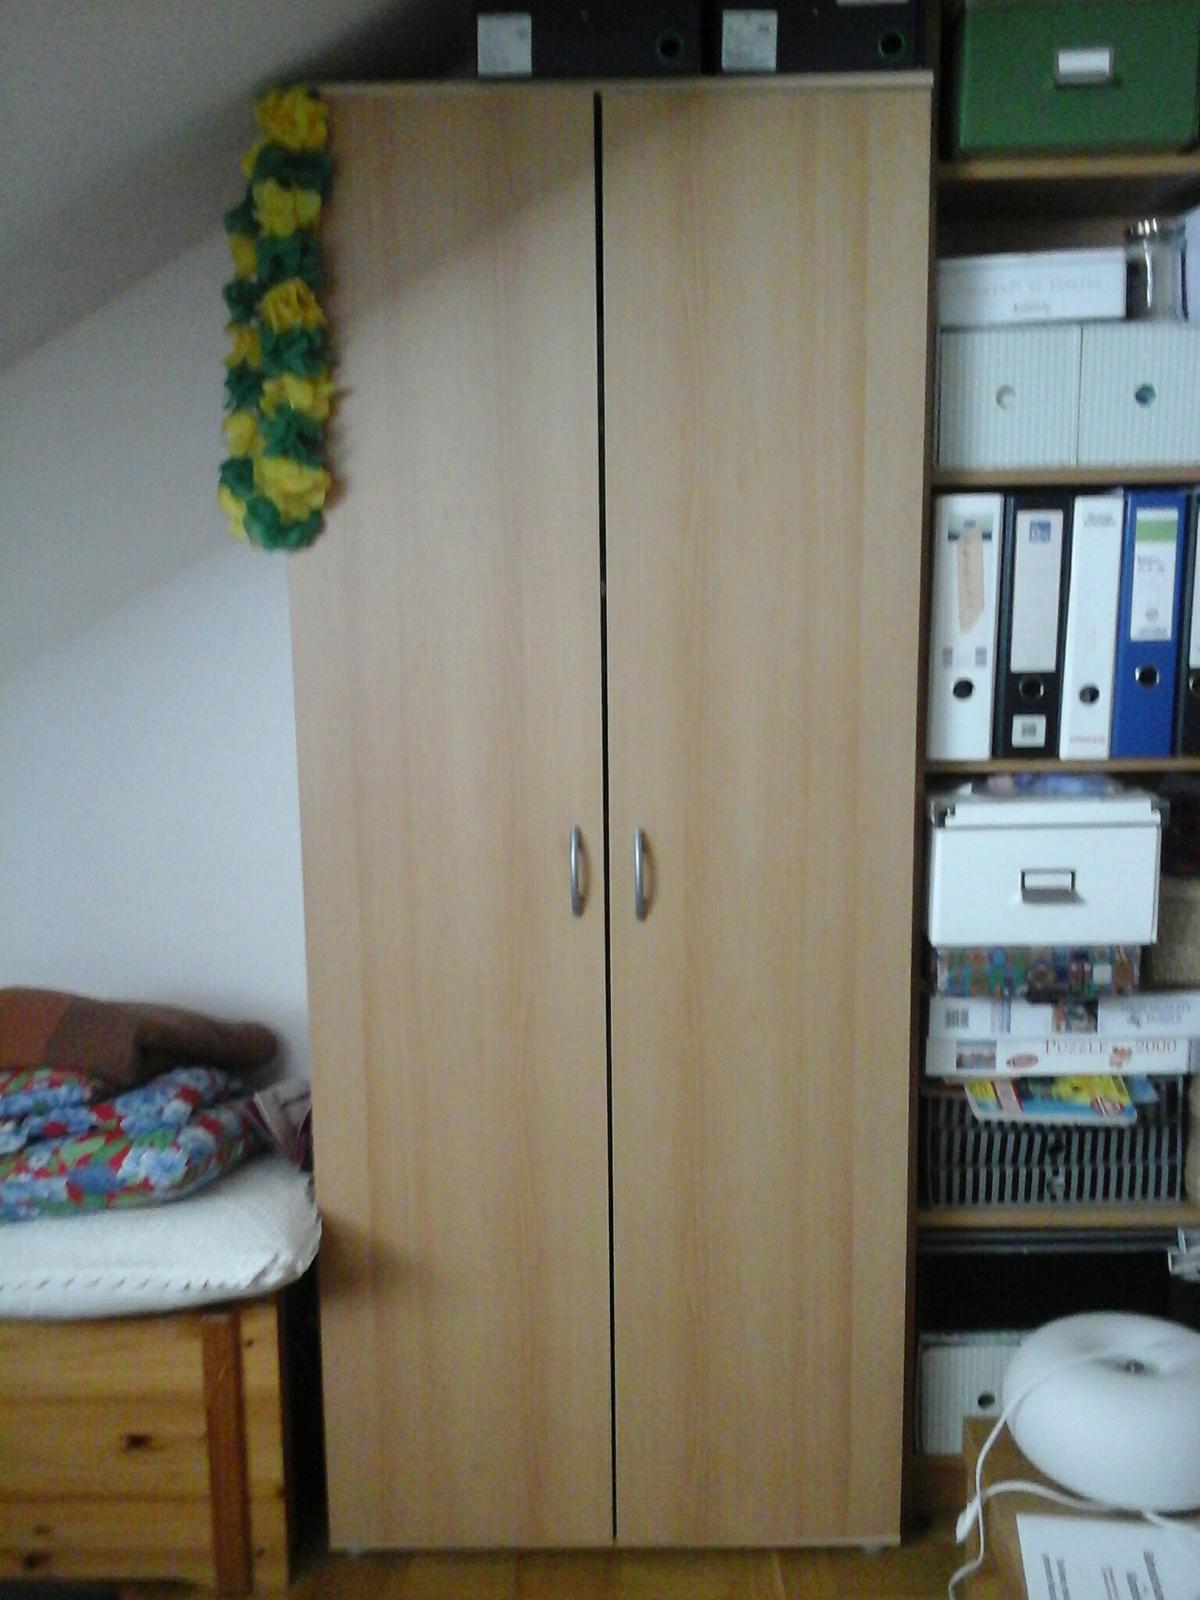 Schrank 1 84 M Hoch 75 Cm Breit In 76228 Karlsruhe For Free For Sale Shpock